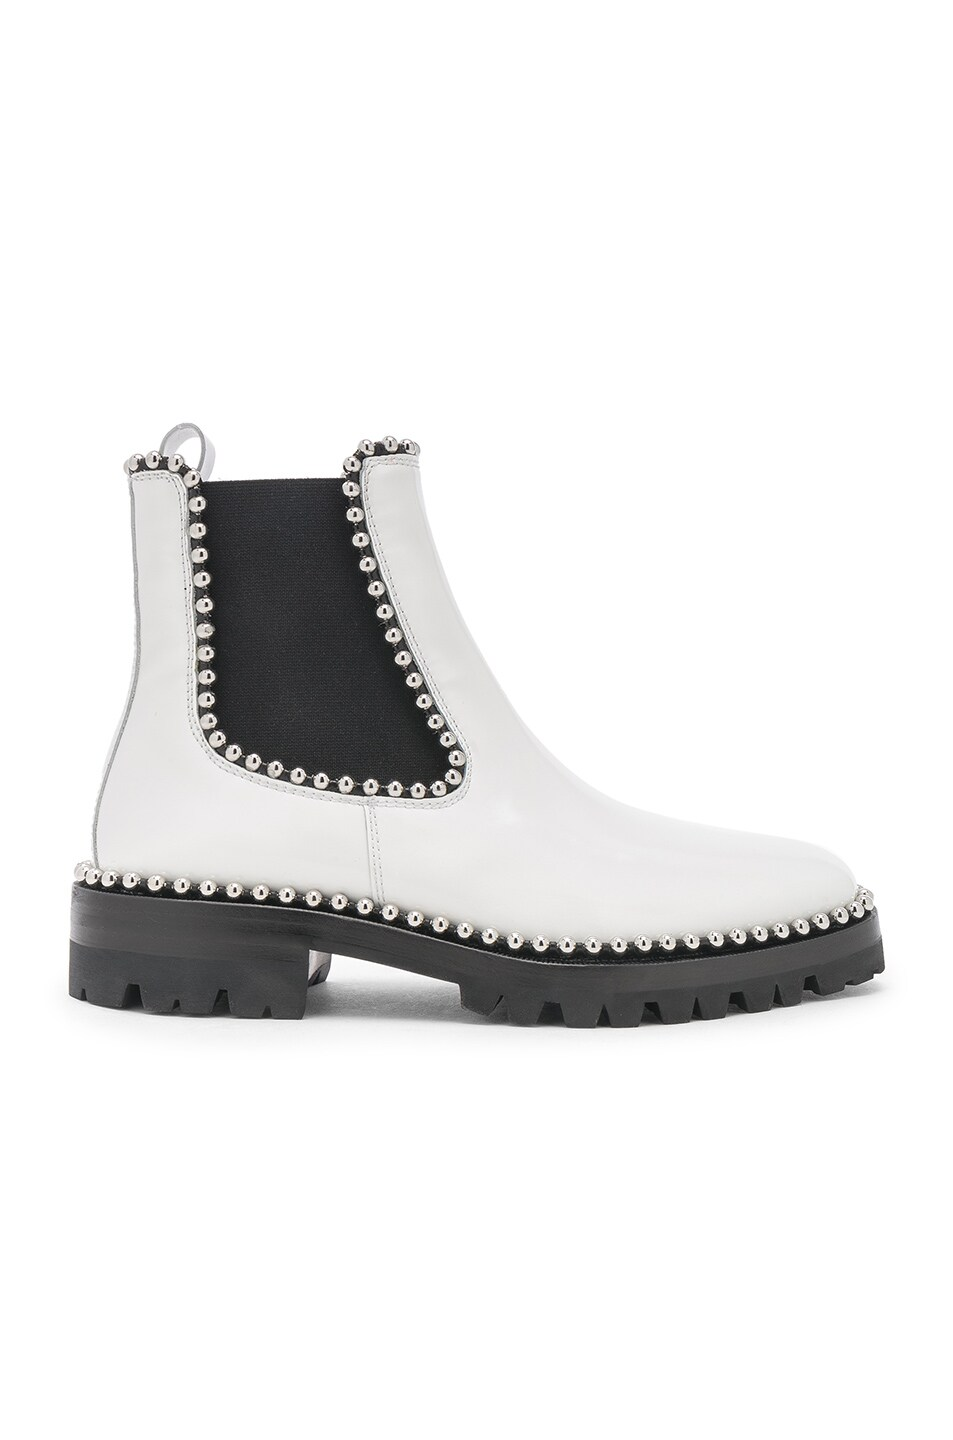 Image 1 of Alexander Wang Spencer Spazzalato Boot in White